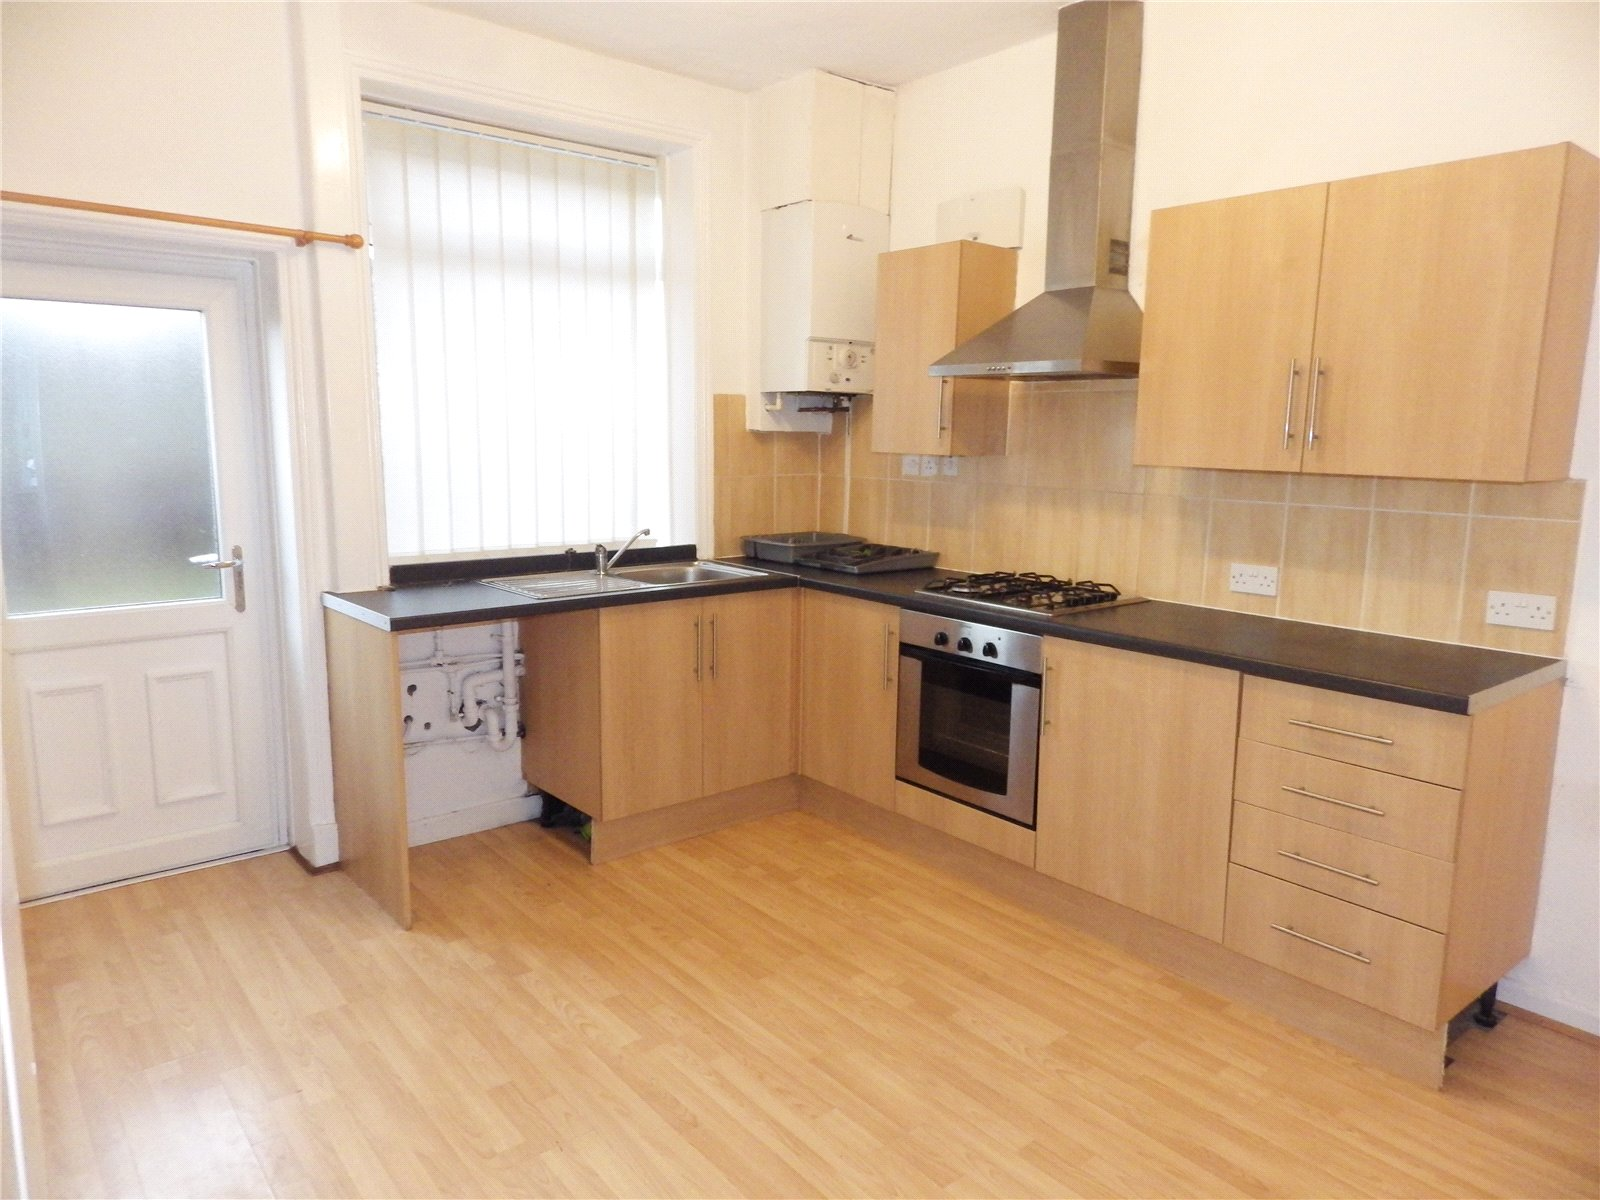 2 Bedrooms Terraced House for sale in Staley Road, Mossley, Ashton-under-Lyne, Greater Manchester, OL5